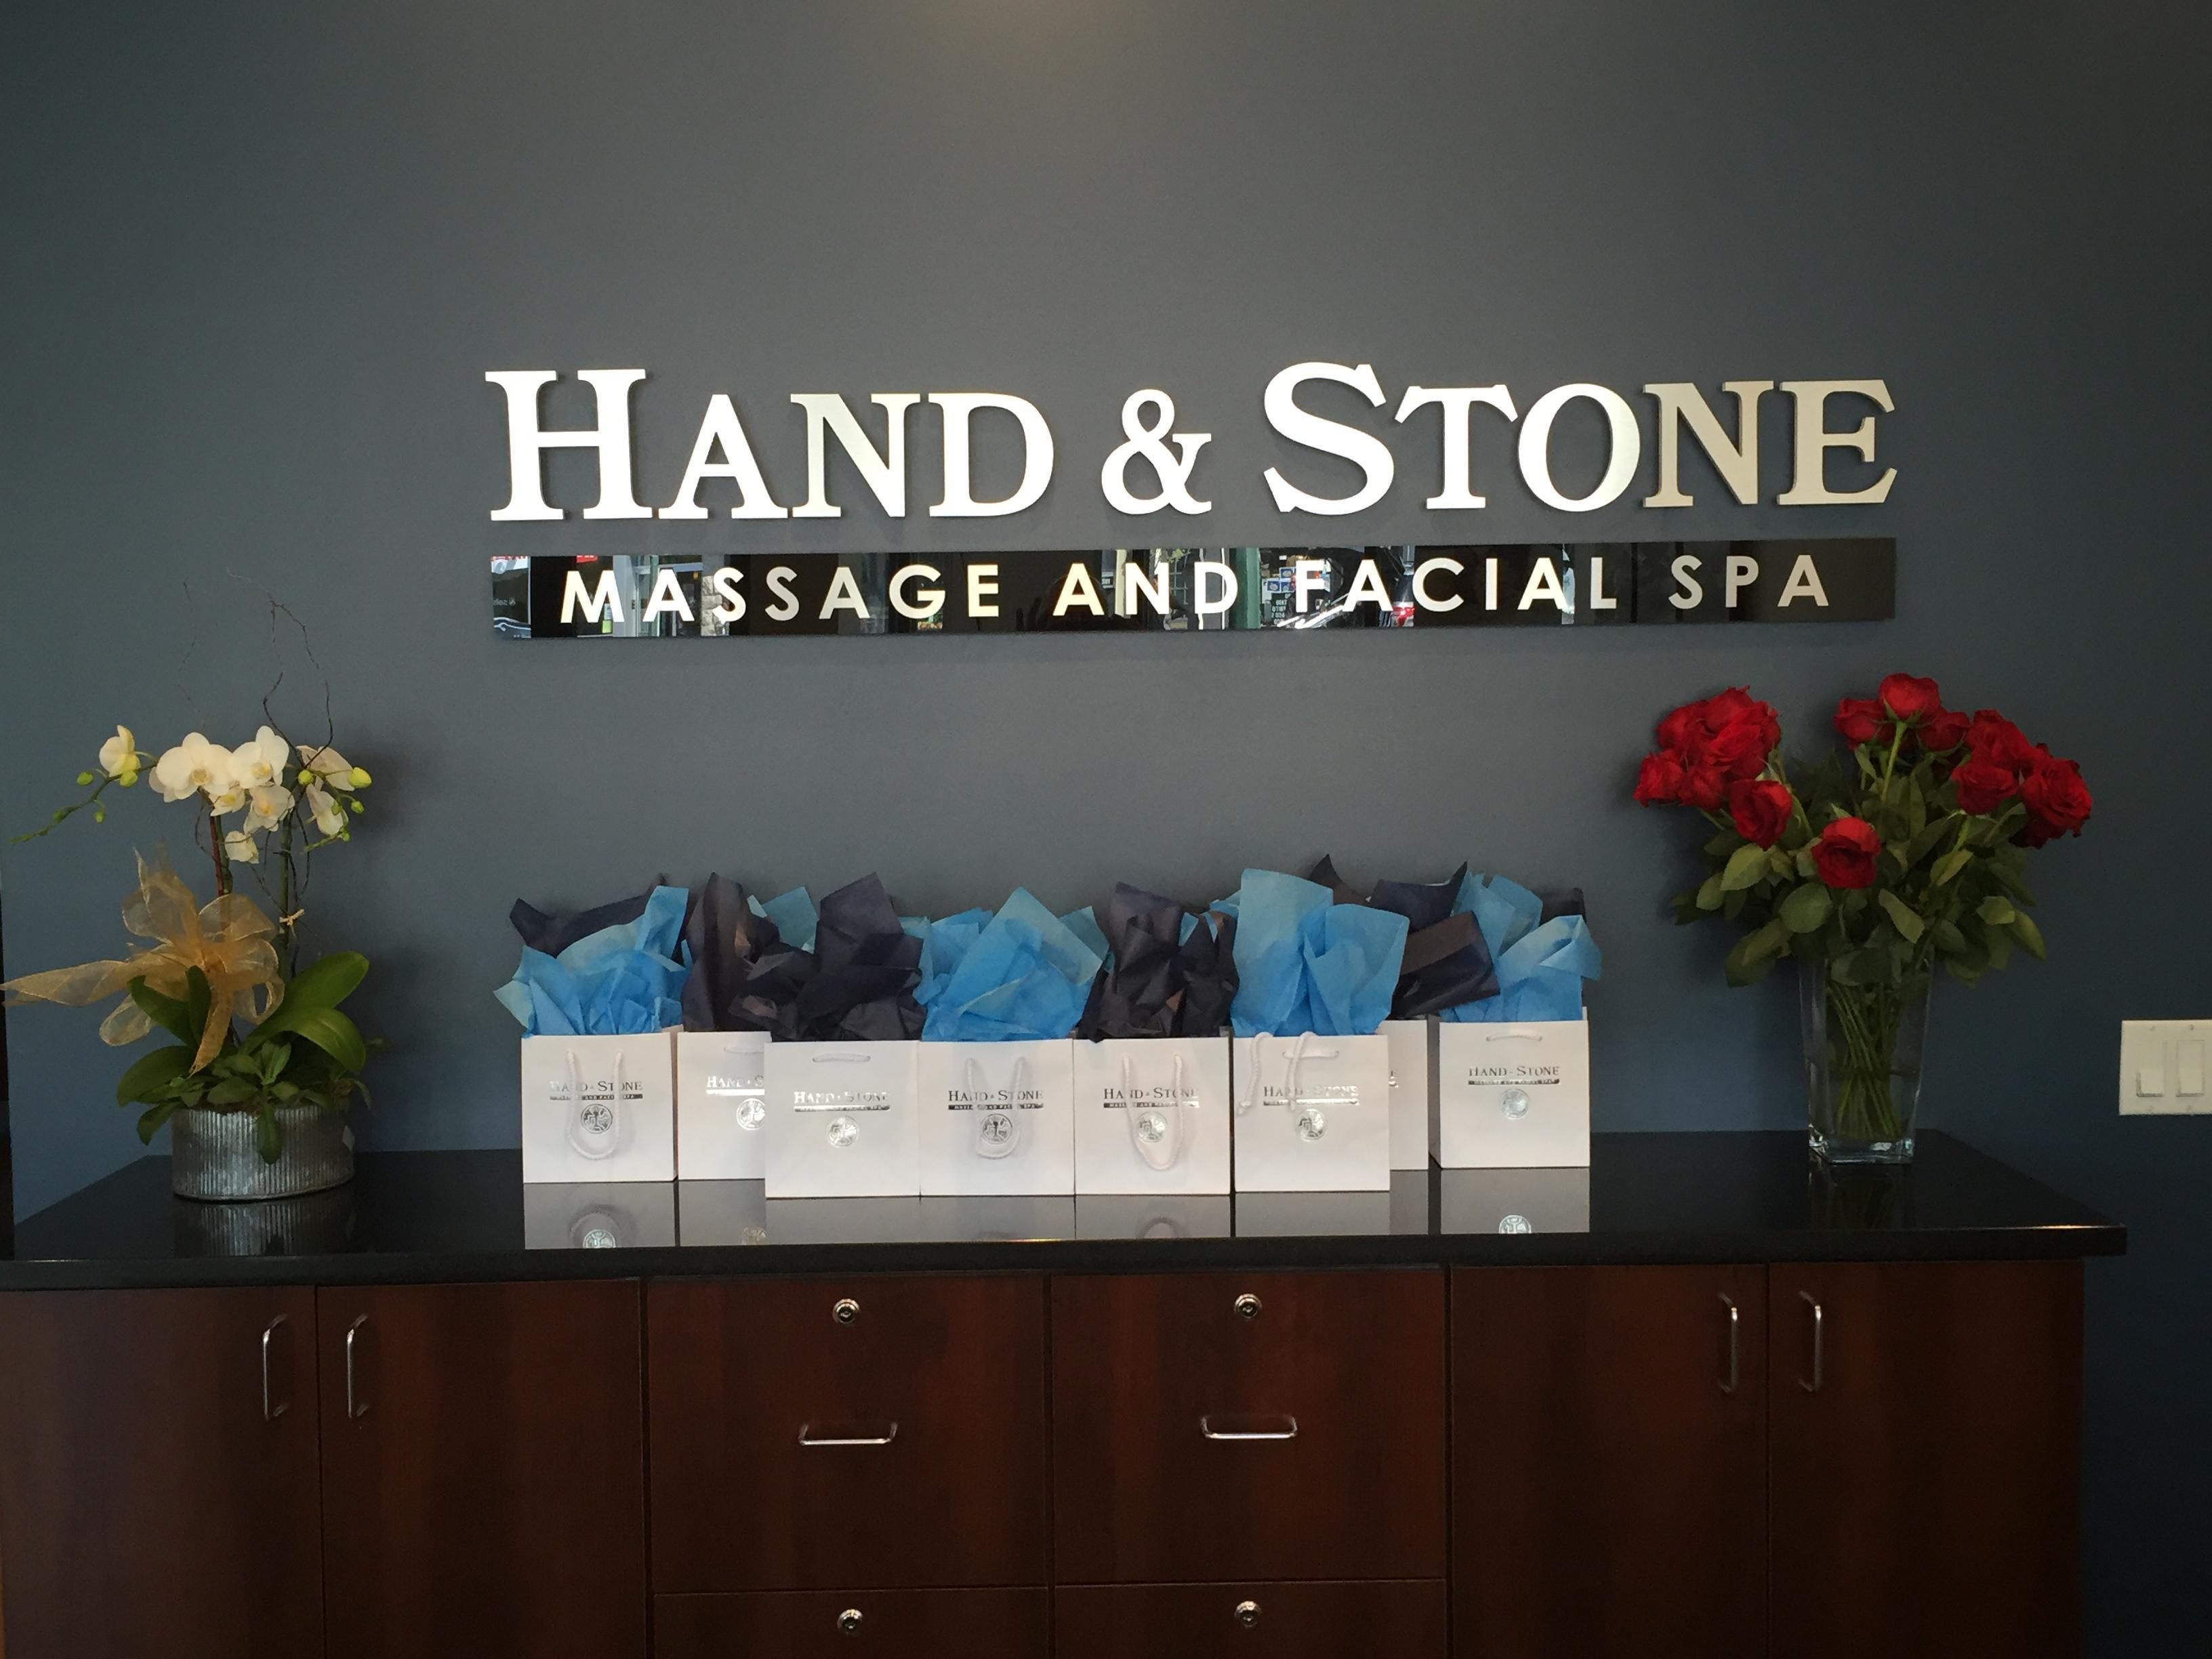 Welcome to Hand & Stone Massage and Facial Spa